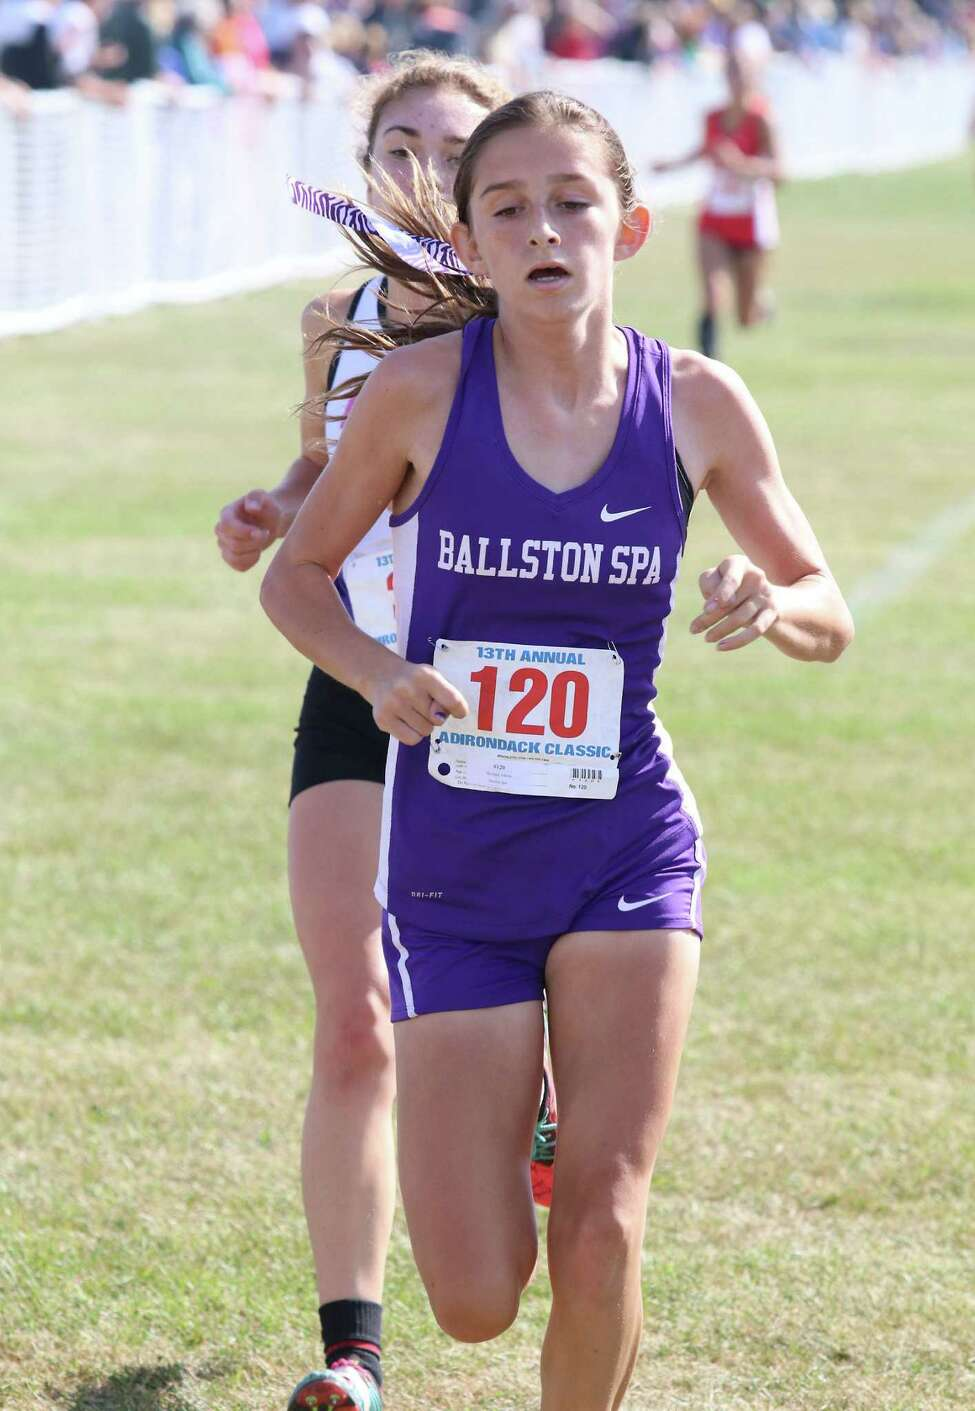 Olivia Lazarou, Amsterdam girls' cross country: Captured the Large School title at the Fort Plain Invitational in 18:19.9.